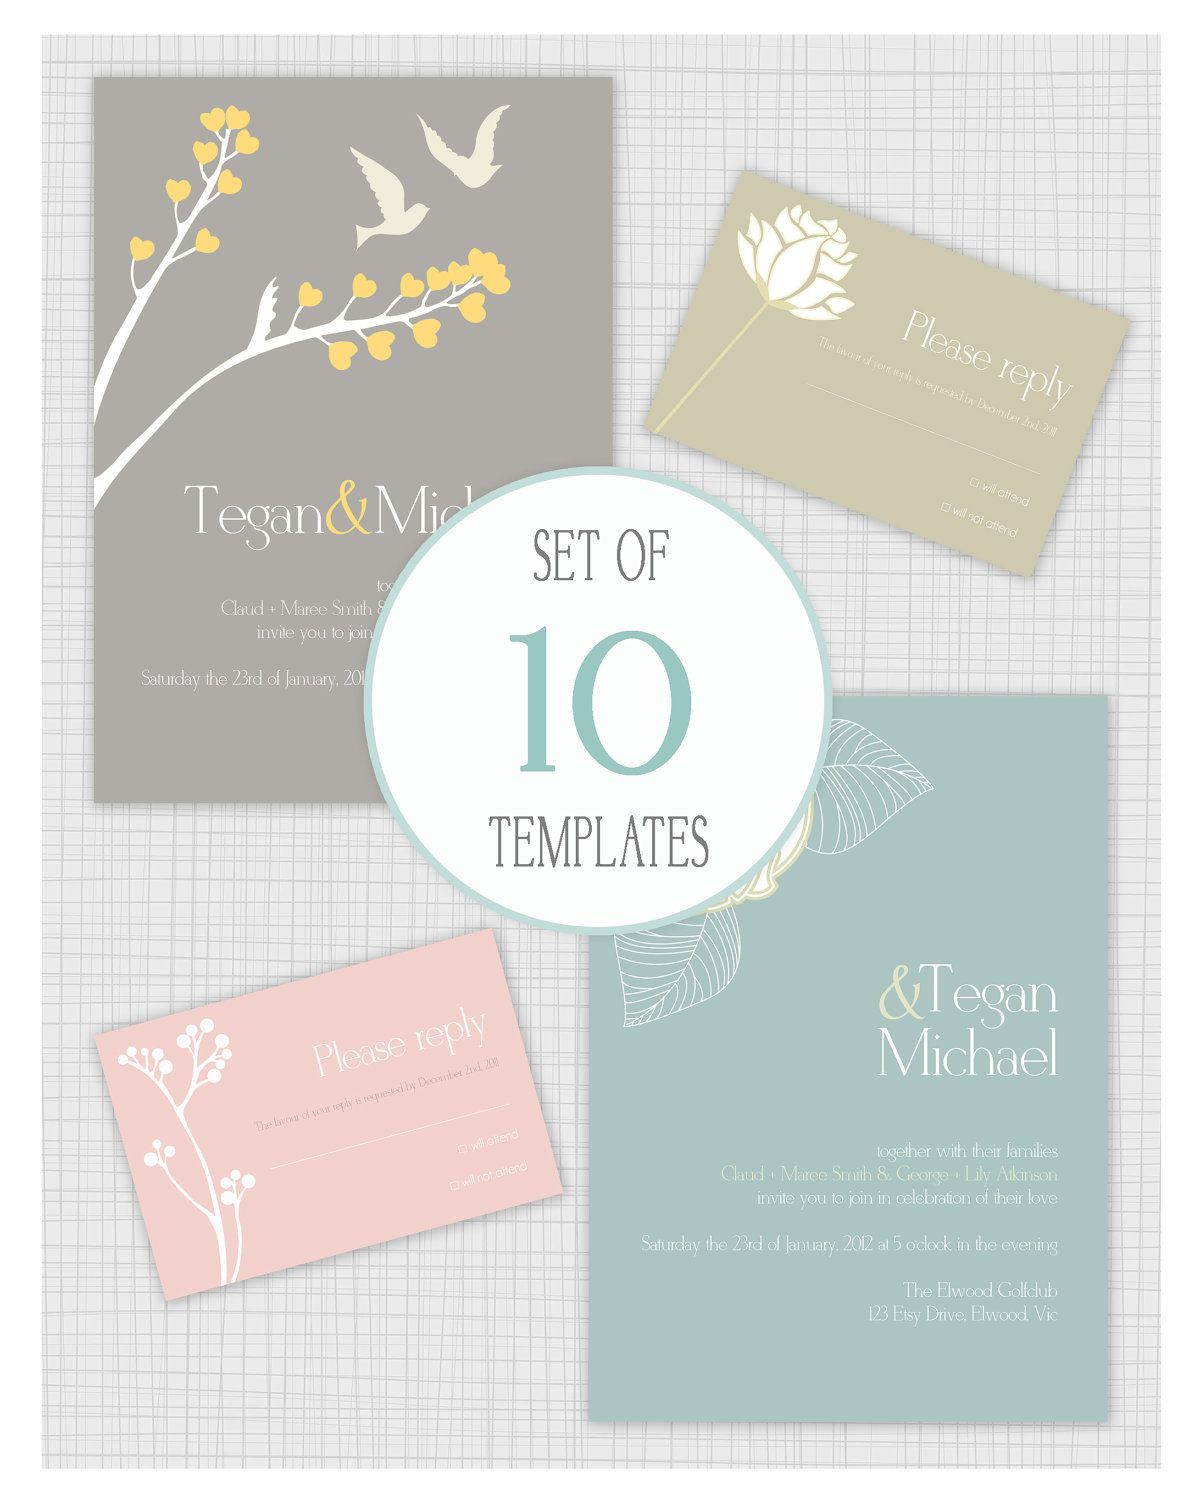 Wedding Invite Email Template: 10 PSD Wedding Invitation Templates. Matching Reply RSVP